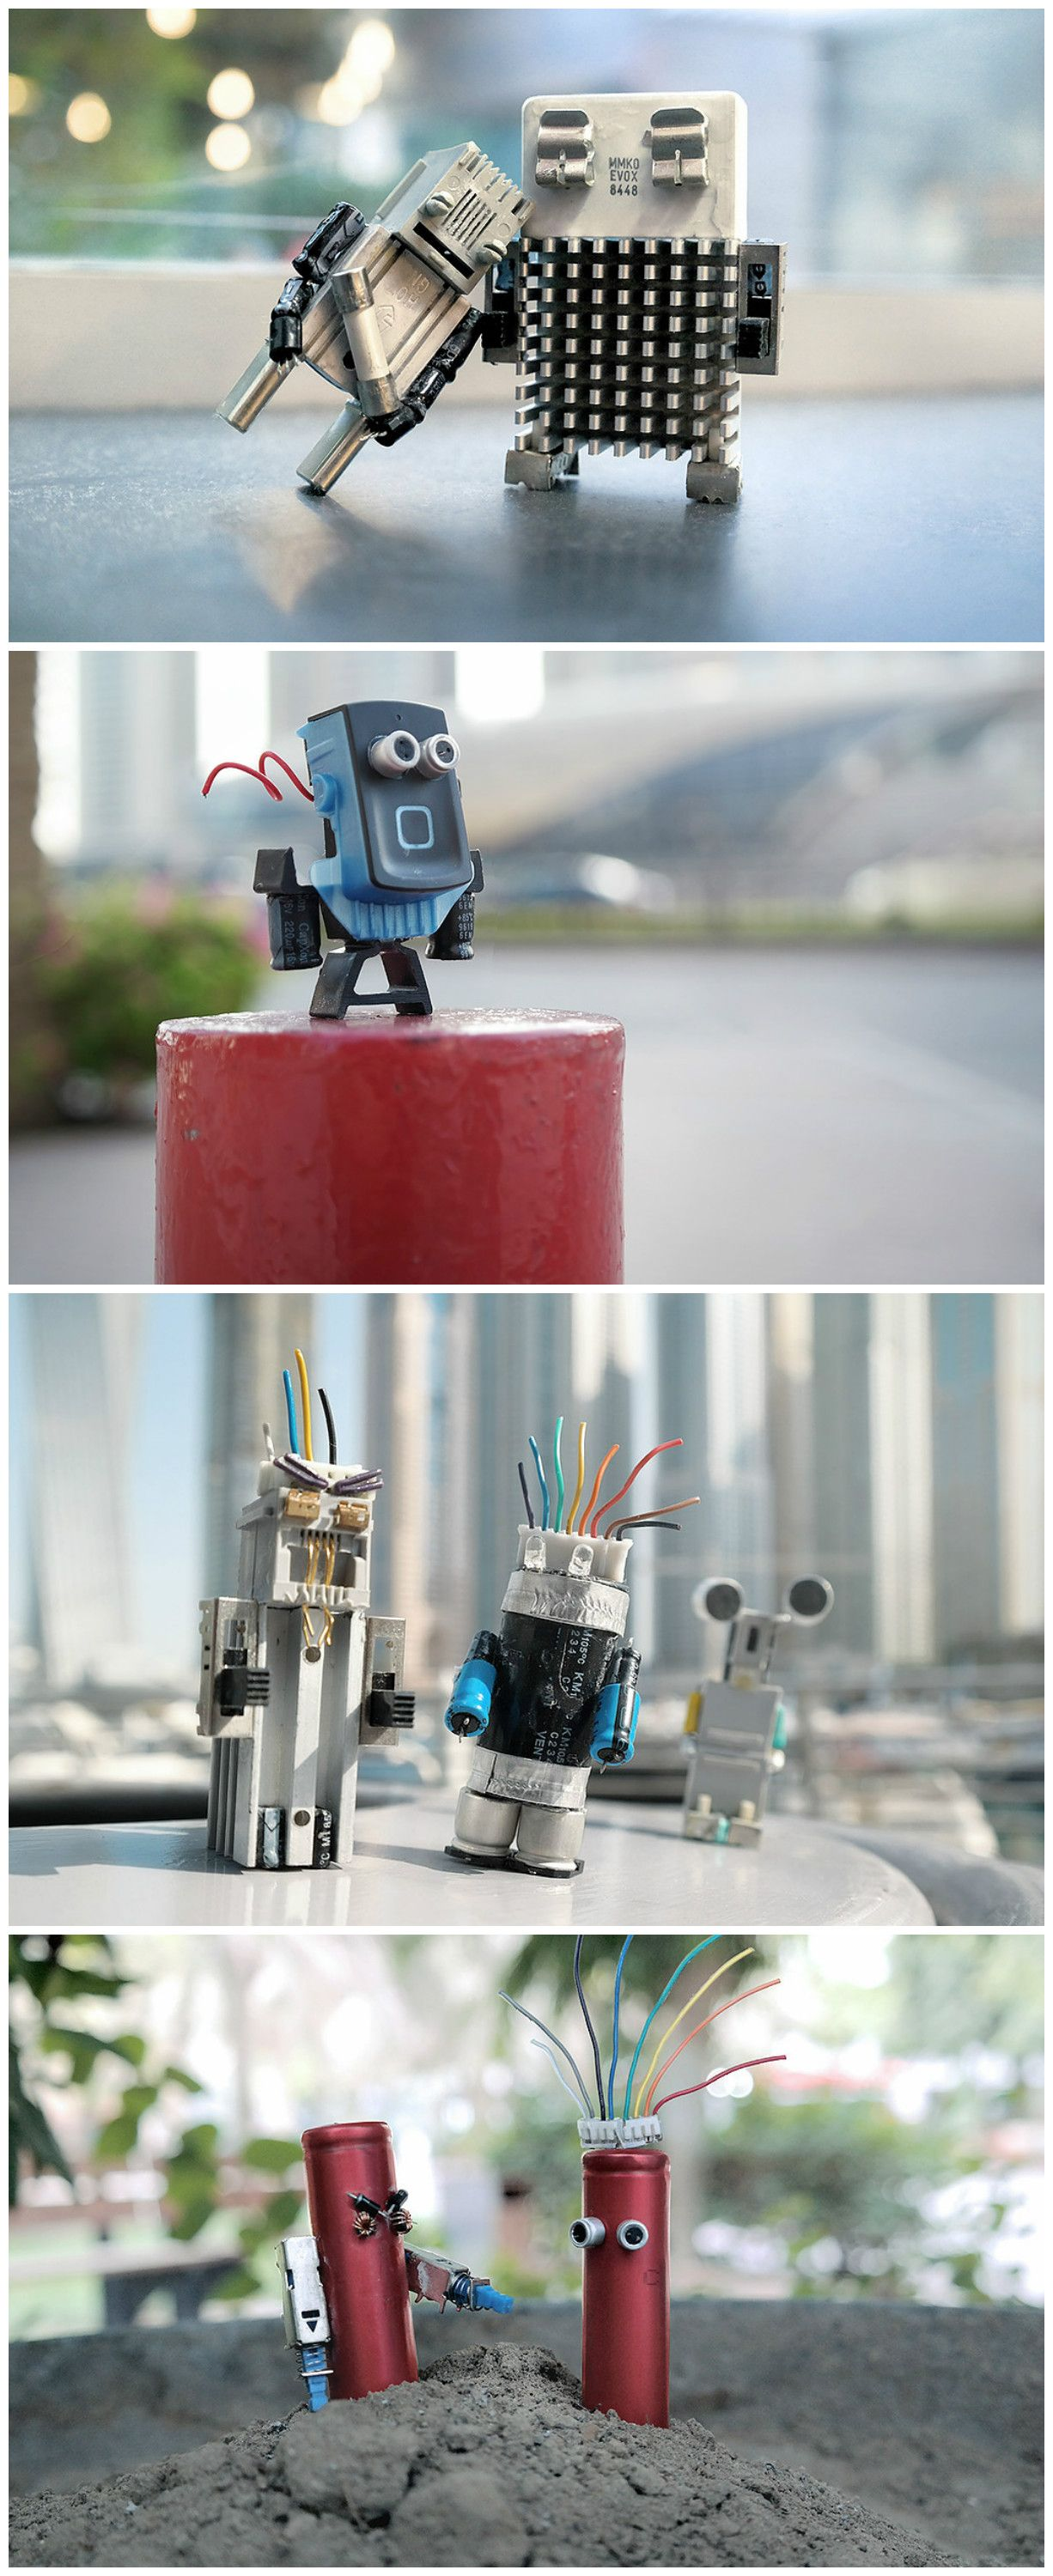 Make Art Not Waste Recycled Characters Out Of Electronic Recycle Circuit Boards Concept Junk Cool Toys Action Figures Made From Old Unwanted Tech Ewaste Gogreen Reducereuserecycle Where Will This Go To Die